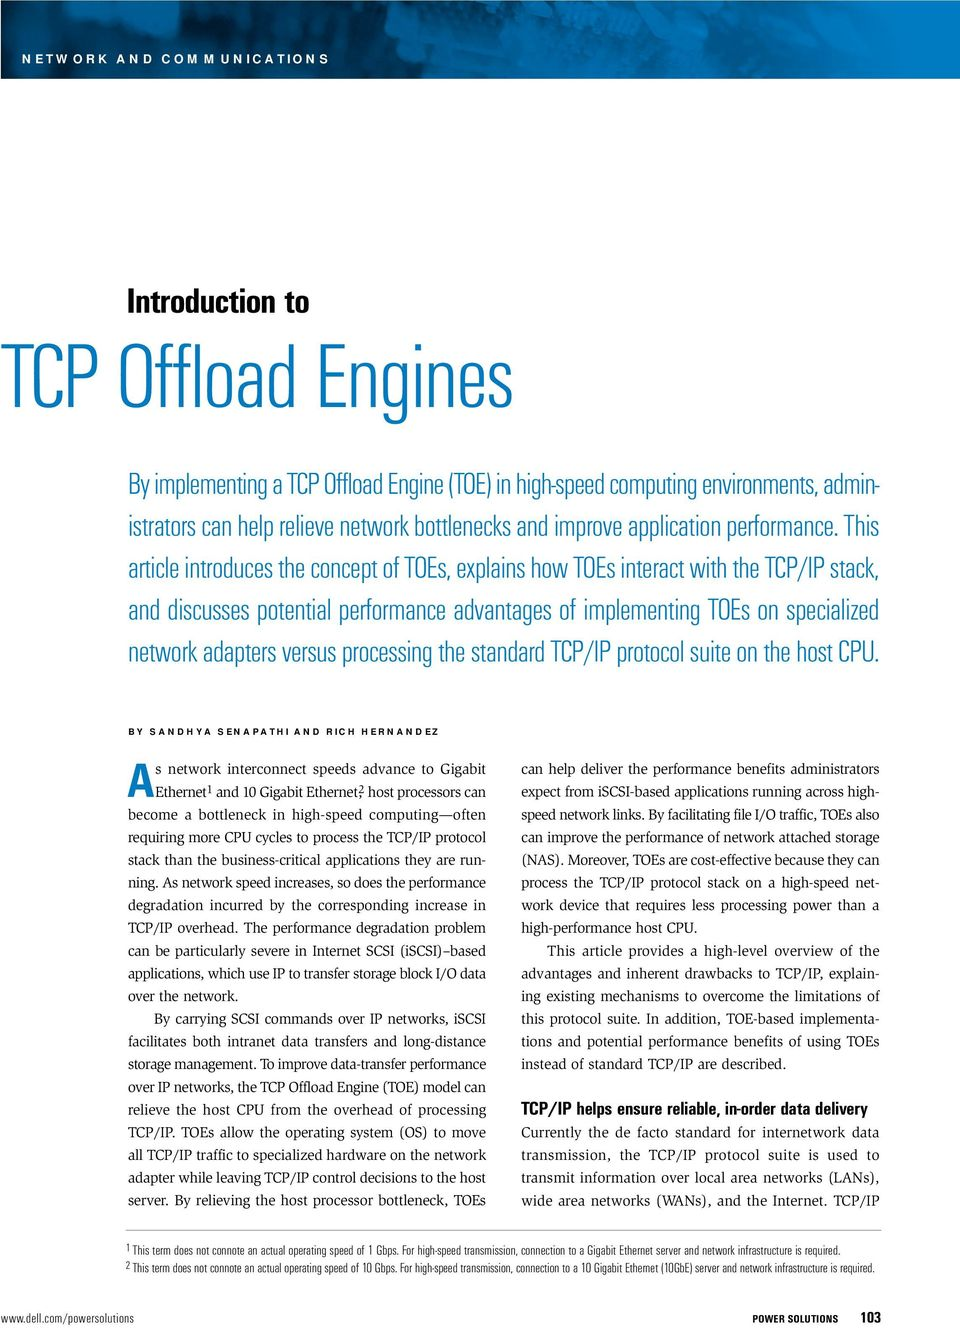 This article introduces the concept of TOEs, explains how TOEs interact with the TCP/IP stack, and discusses potential performance advantages of implementing TOEs on specialized network adapters